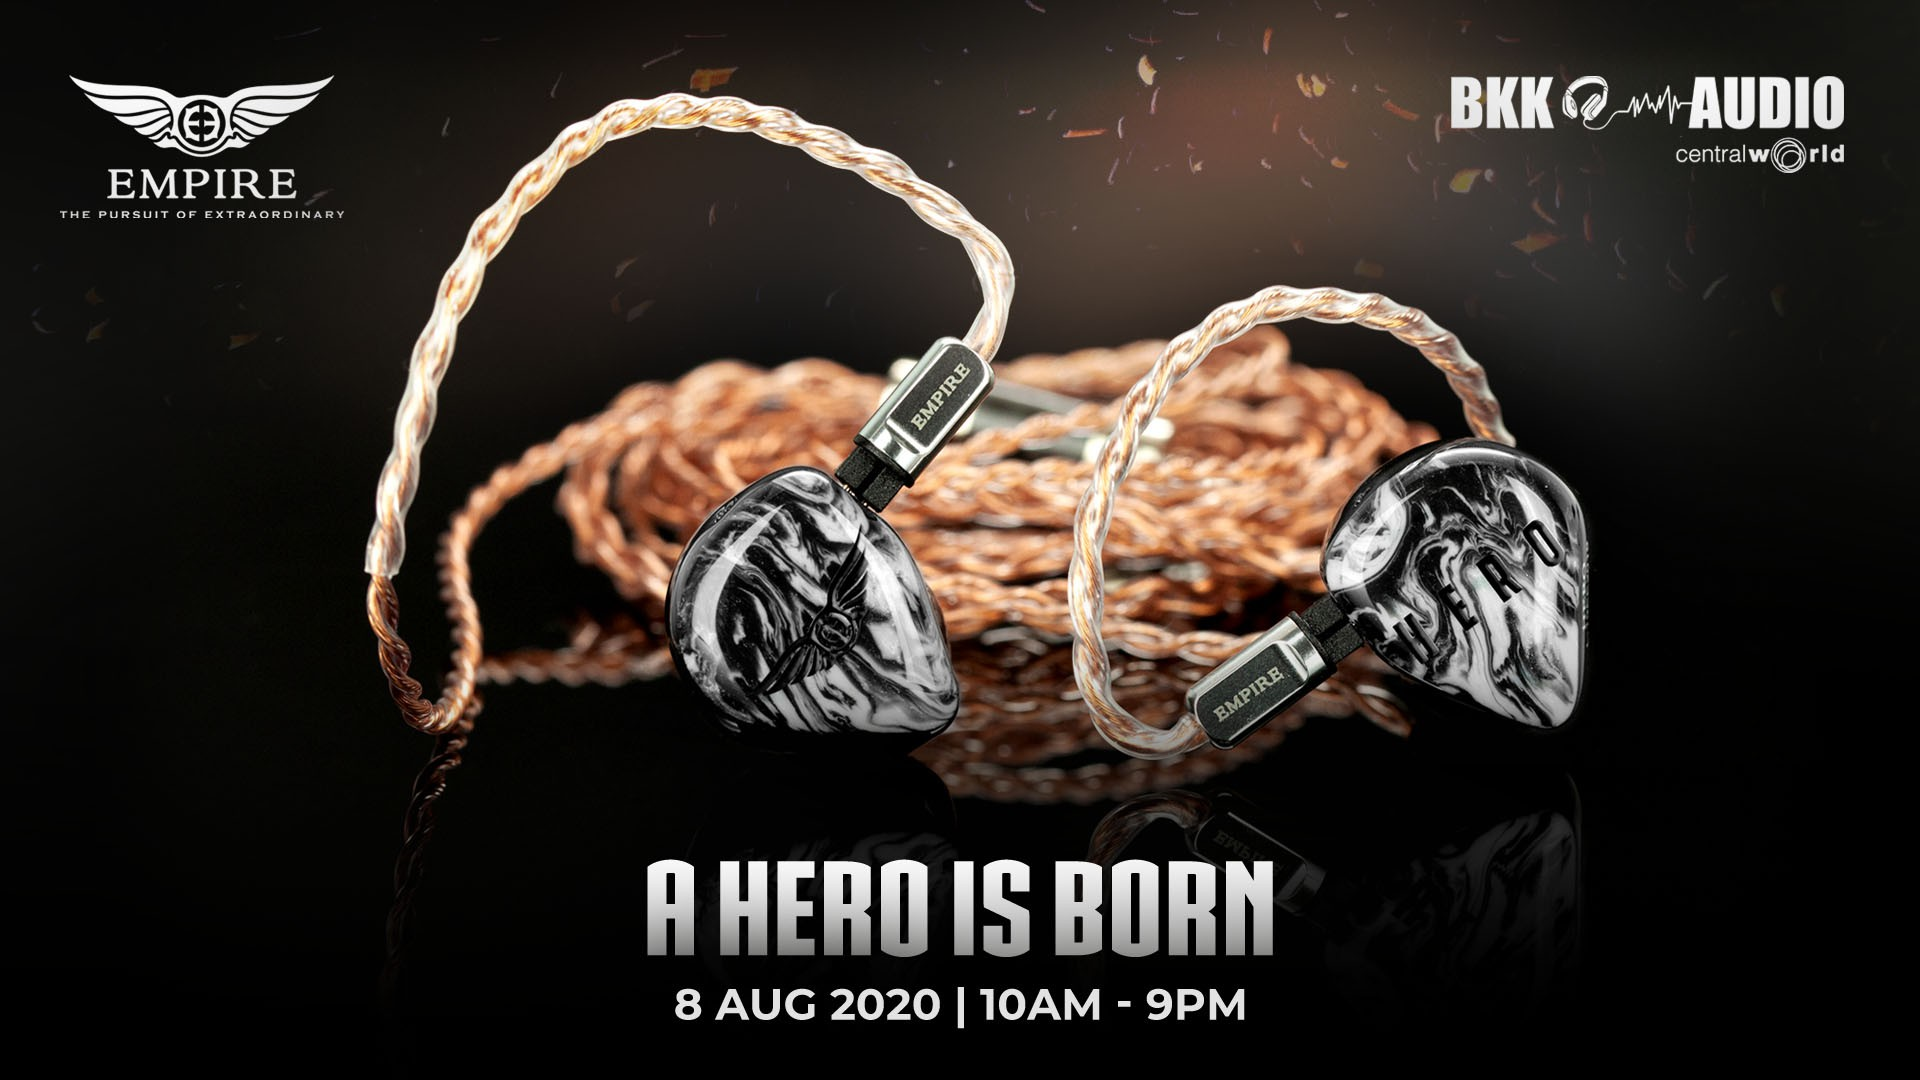 Banners ads for our New CIEMs/UIEMs Empire Ears Odin and Hero